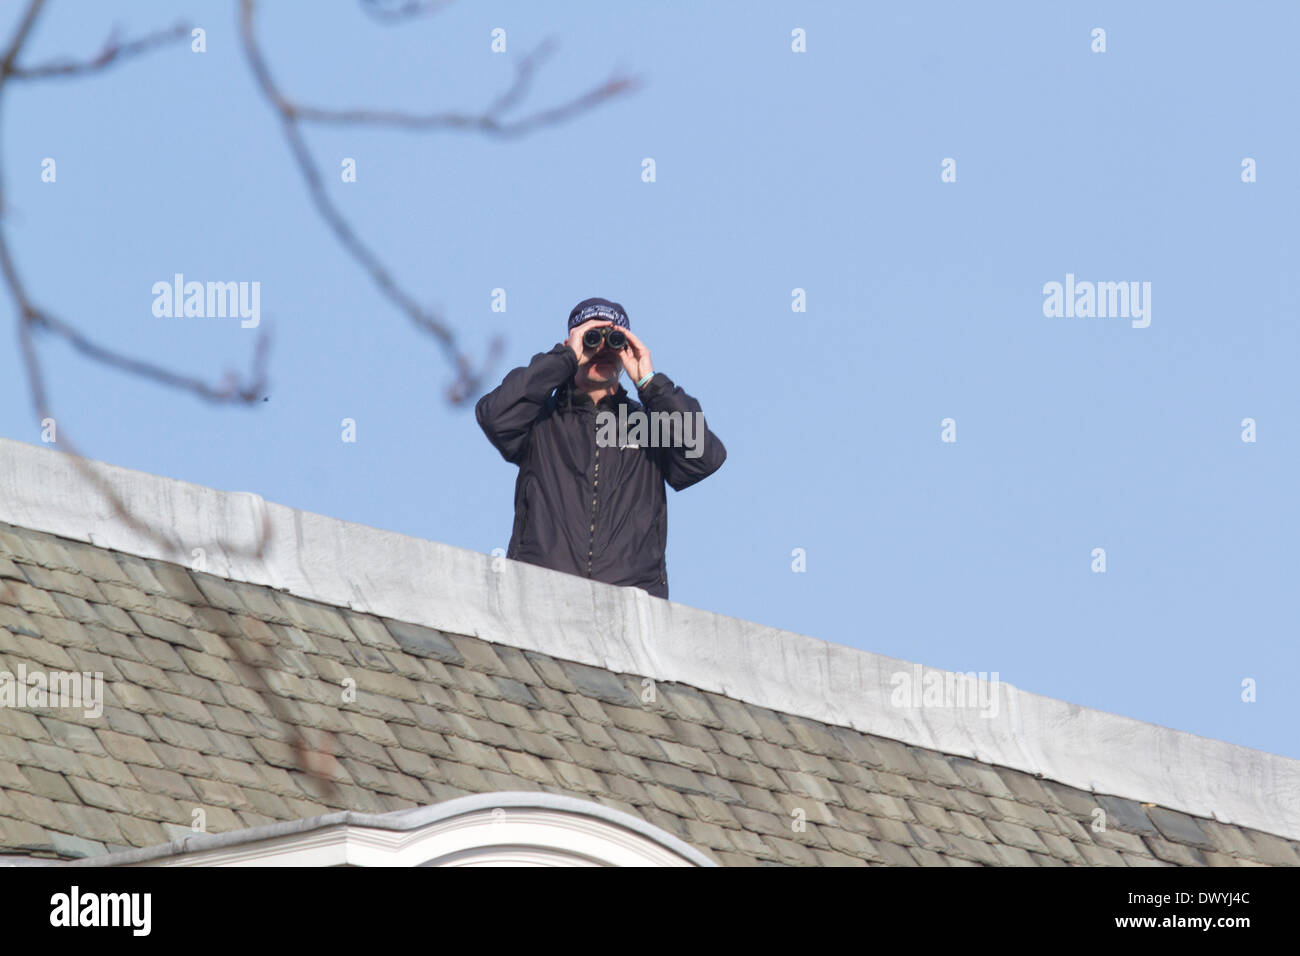 London UK. 14th March 2014. A policeman with binoculars on the rooftop of the American Ambassador residence in London as  US Secretary of State John Kerry was meeting his Russian counterpart foreign minister Sergei Lavrov in London to discuss the Ukranian crisis and the referendum in Crimea - Stock Image